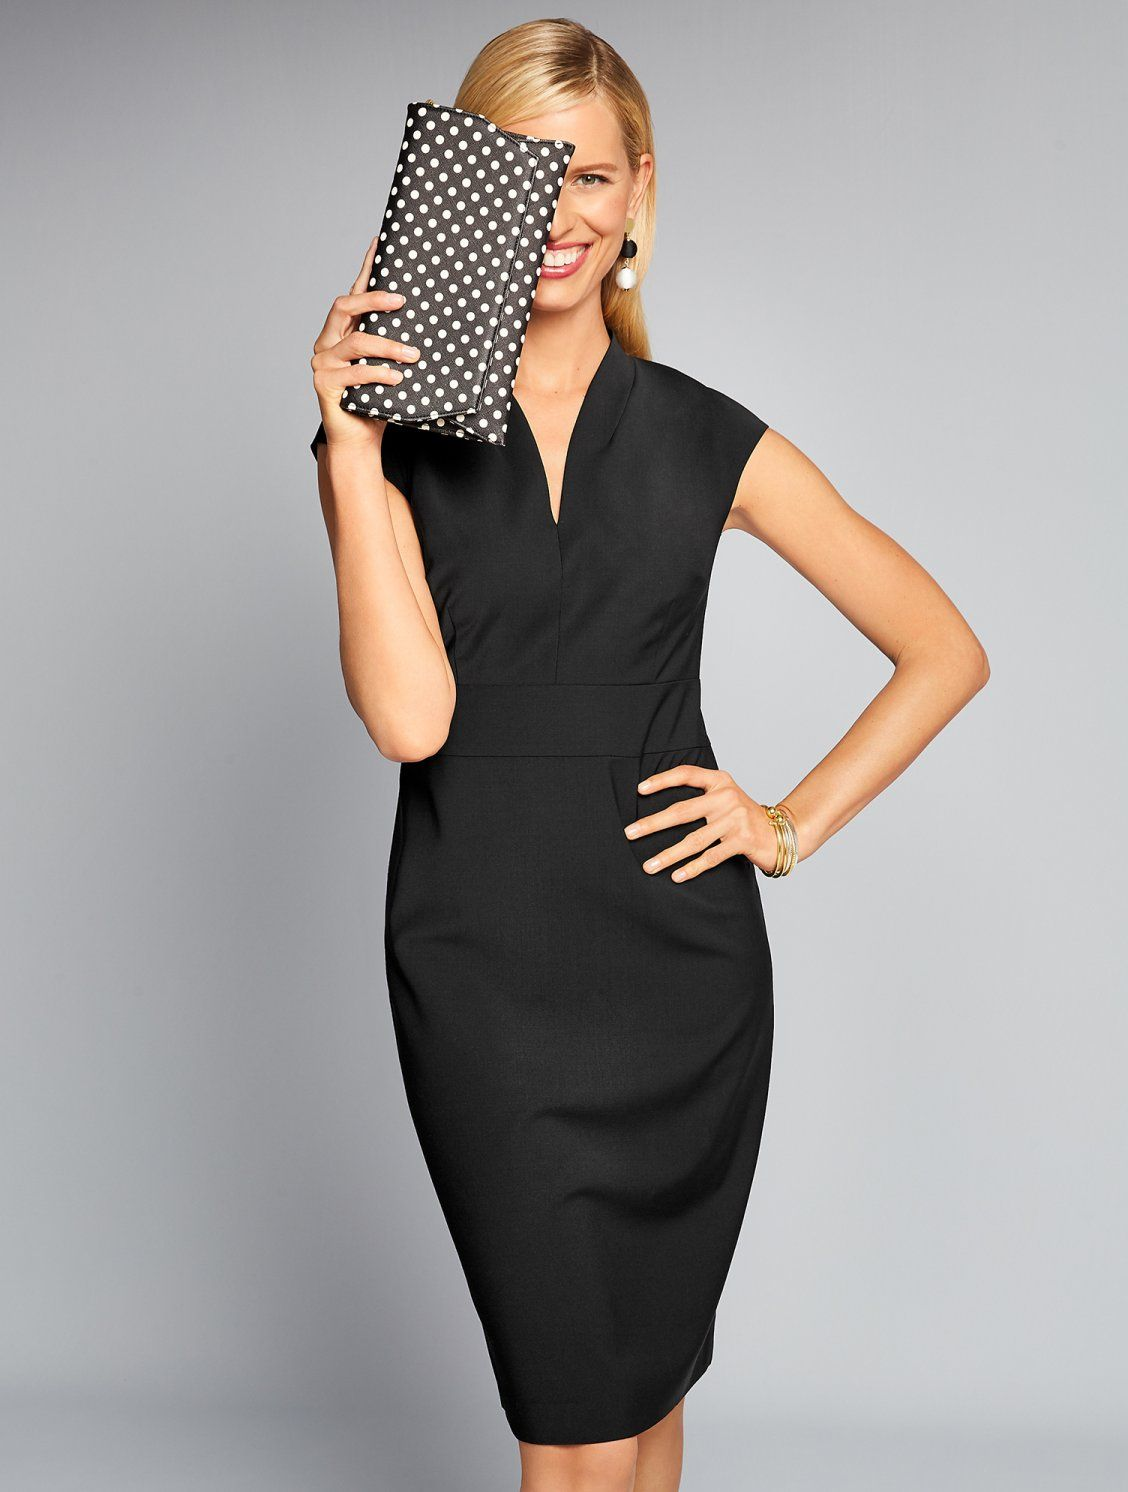 This Gorgeous Sheath Dress From Our Lovely Seasonless Wool Collection Has A Flattering Cinched Waist And Princess Seams F Dresses Talbots Outfits Sheath Dress [ 1492 x 1128 Pixel ]